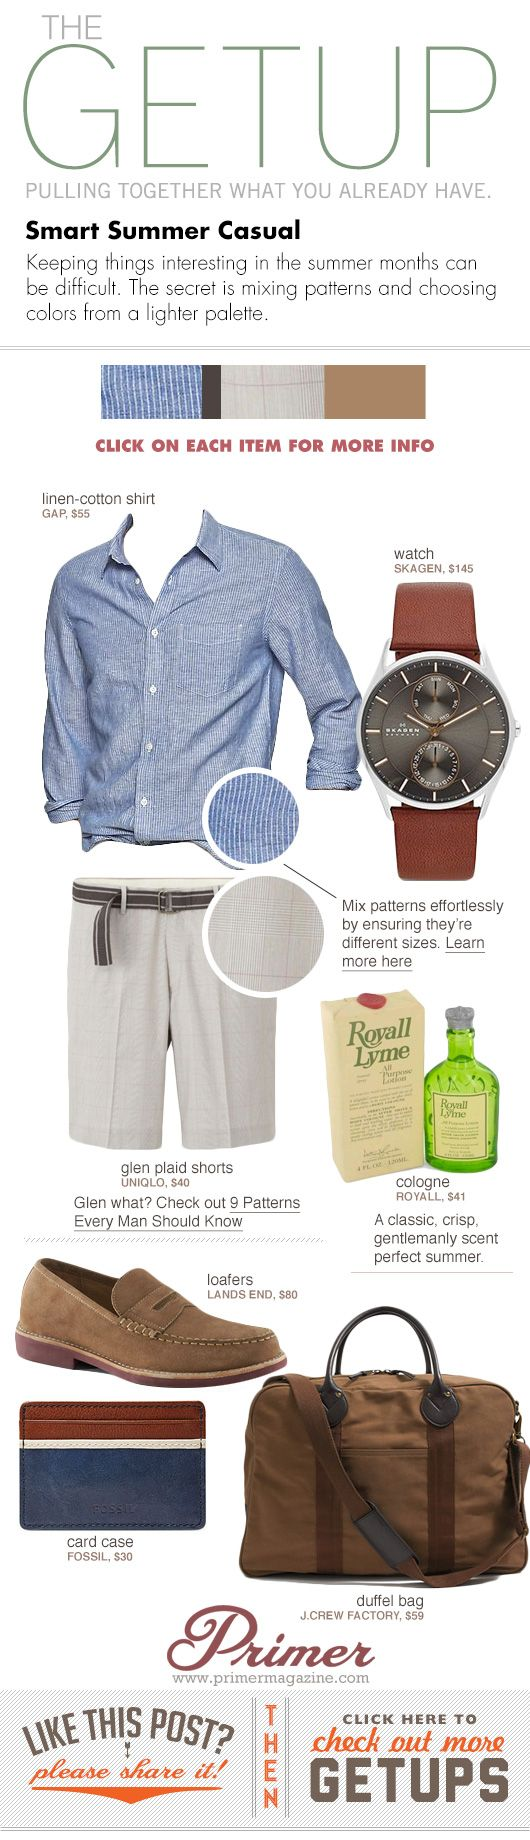 The Getup: Smart Summer Casual - Primer